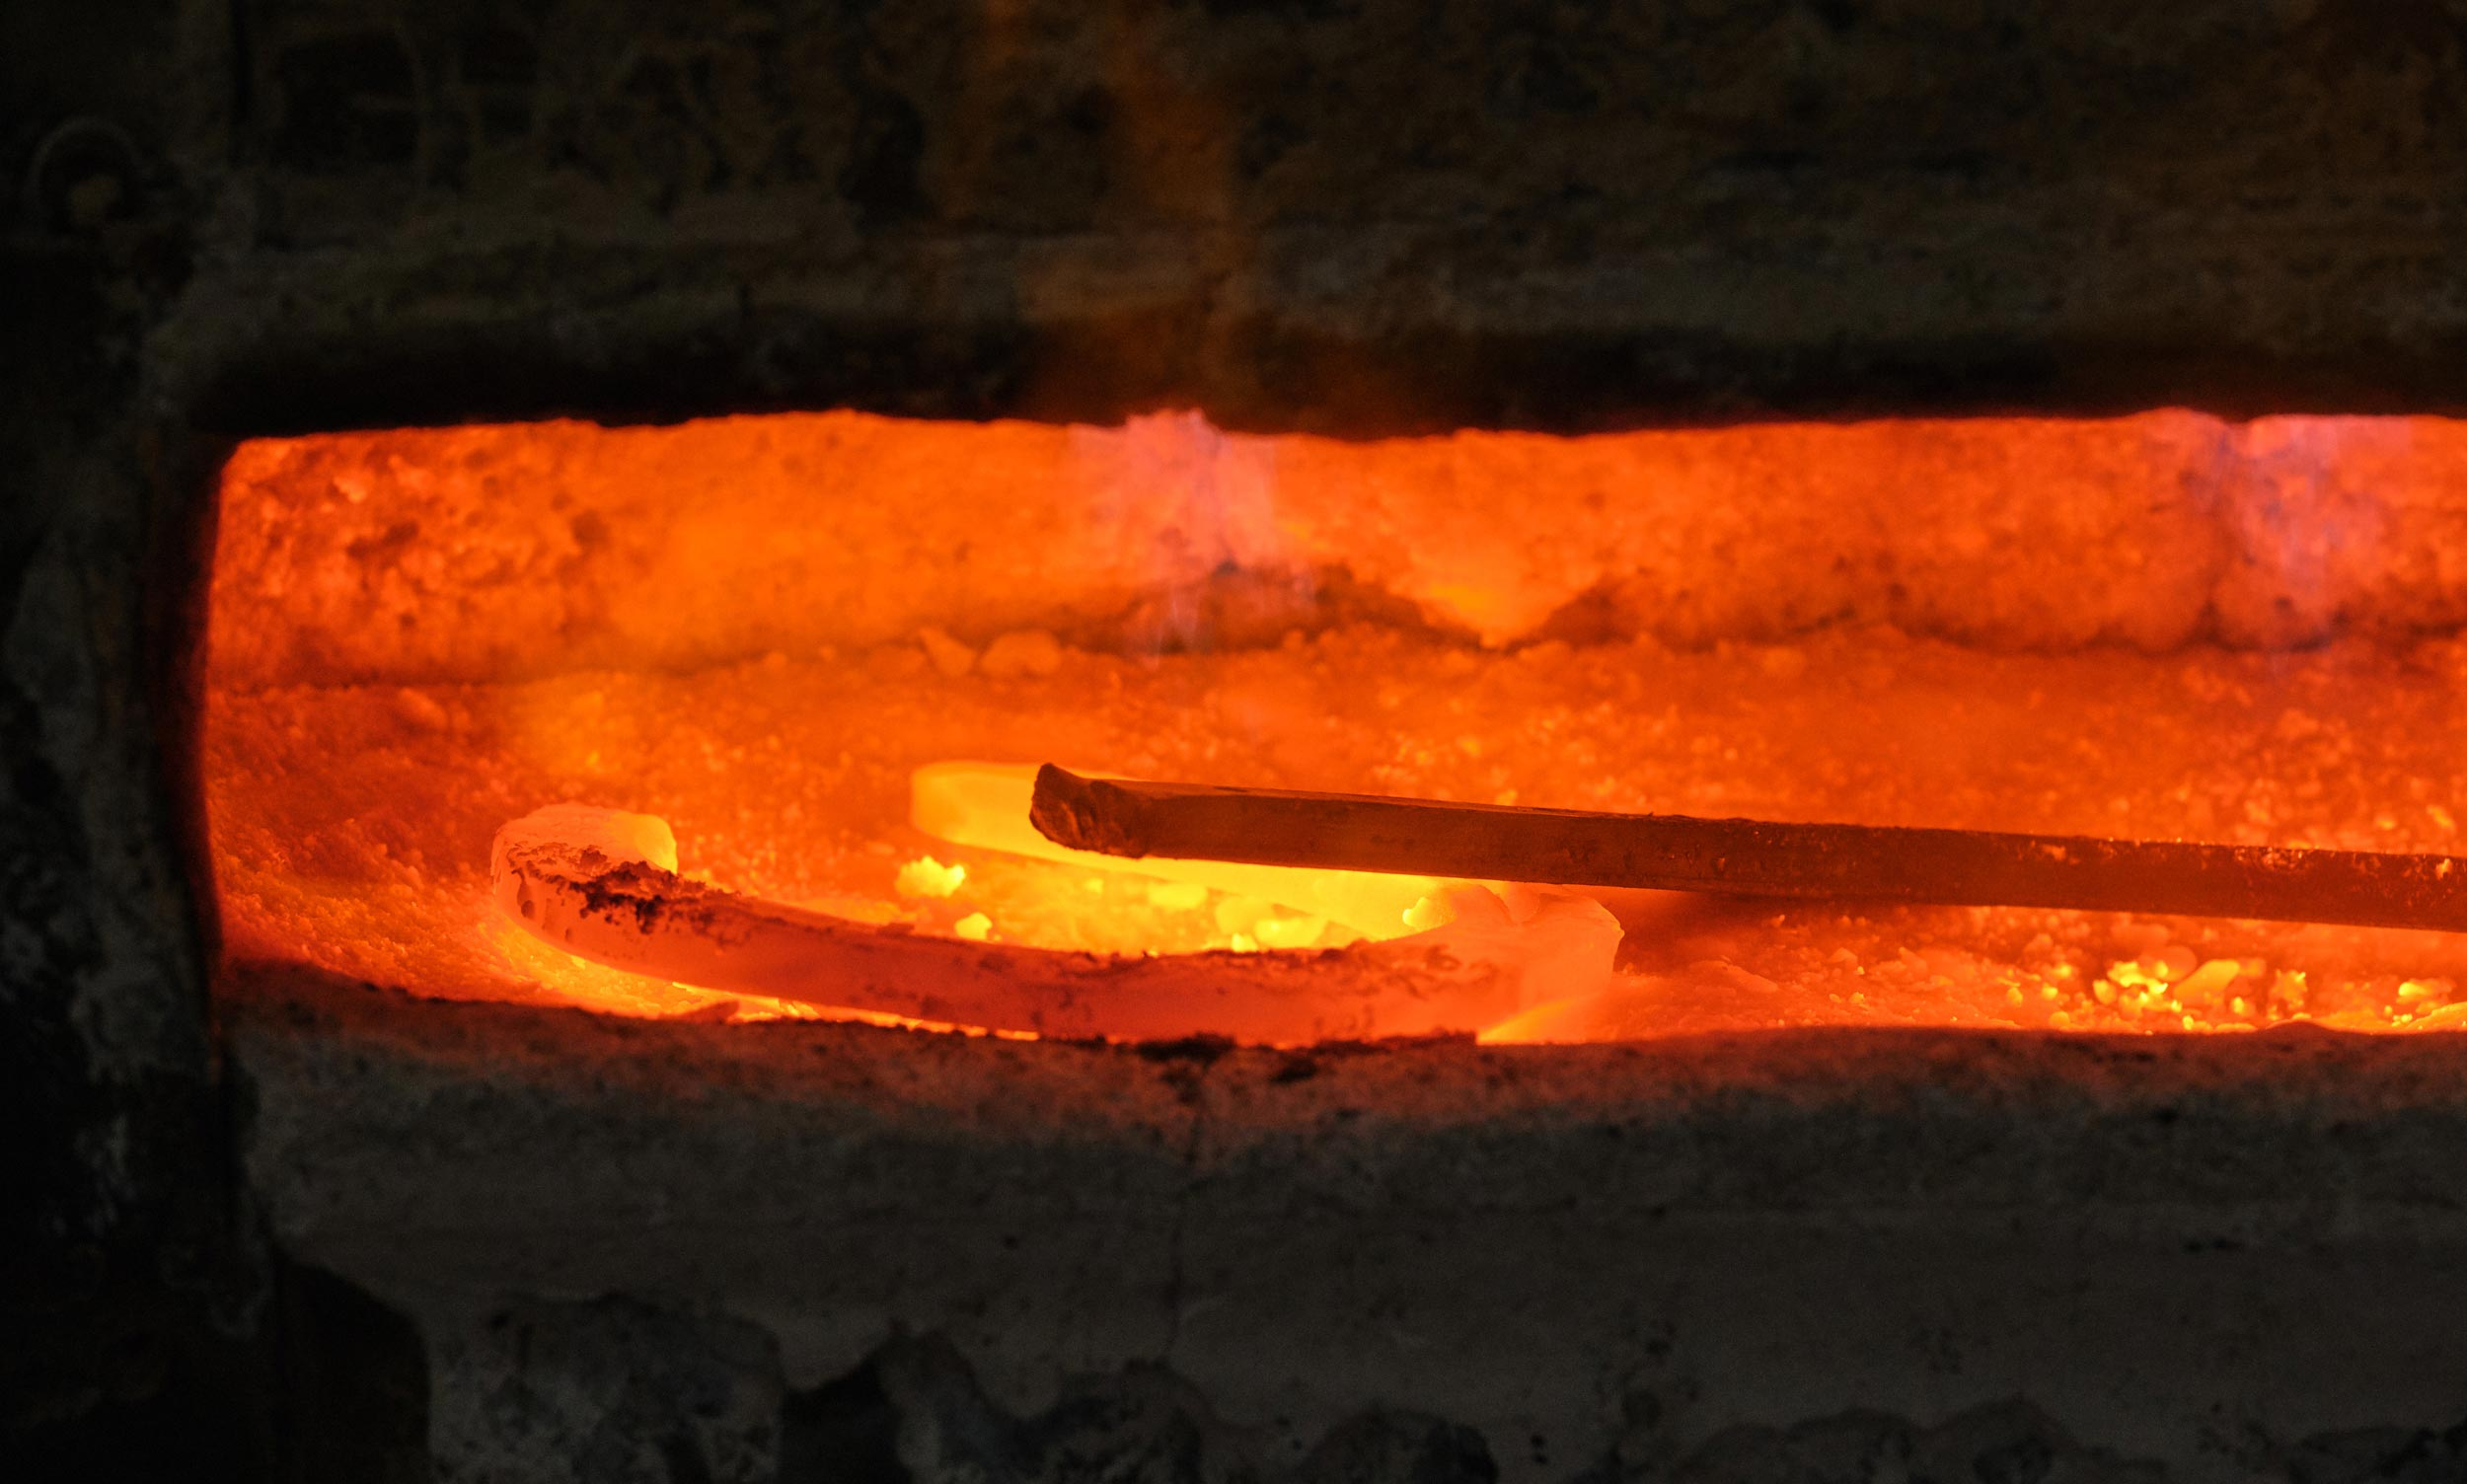 Furnace with Glowing Red Horseshoes